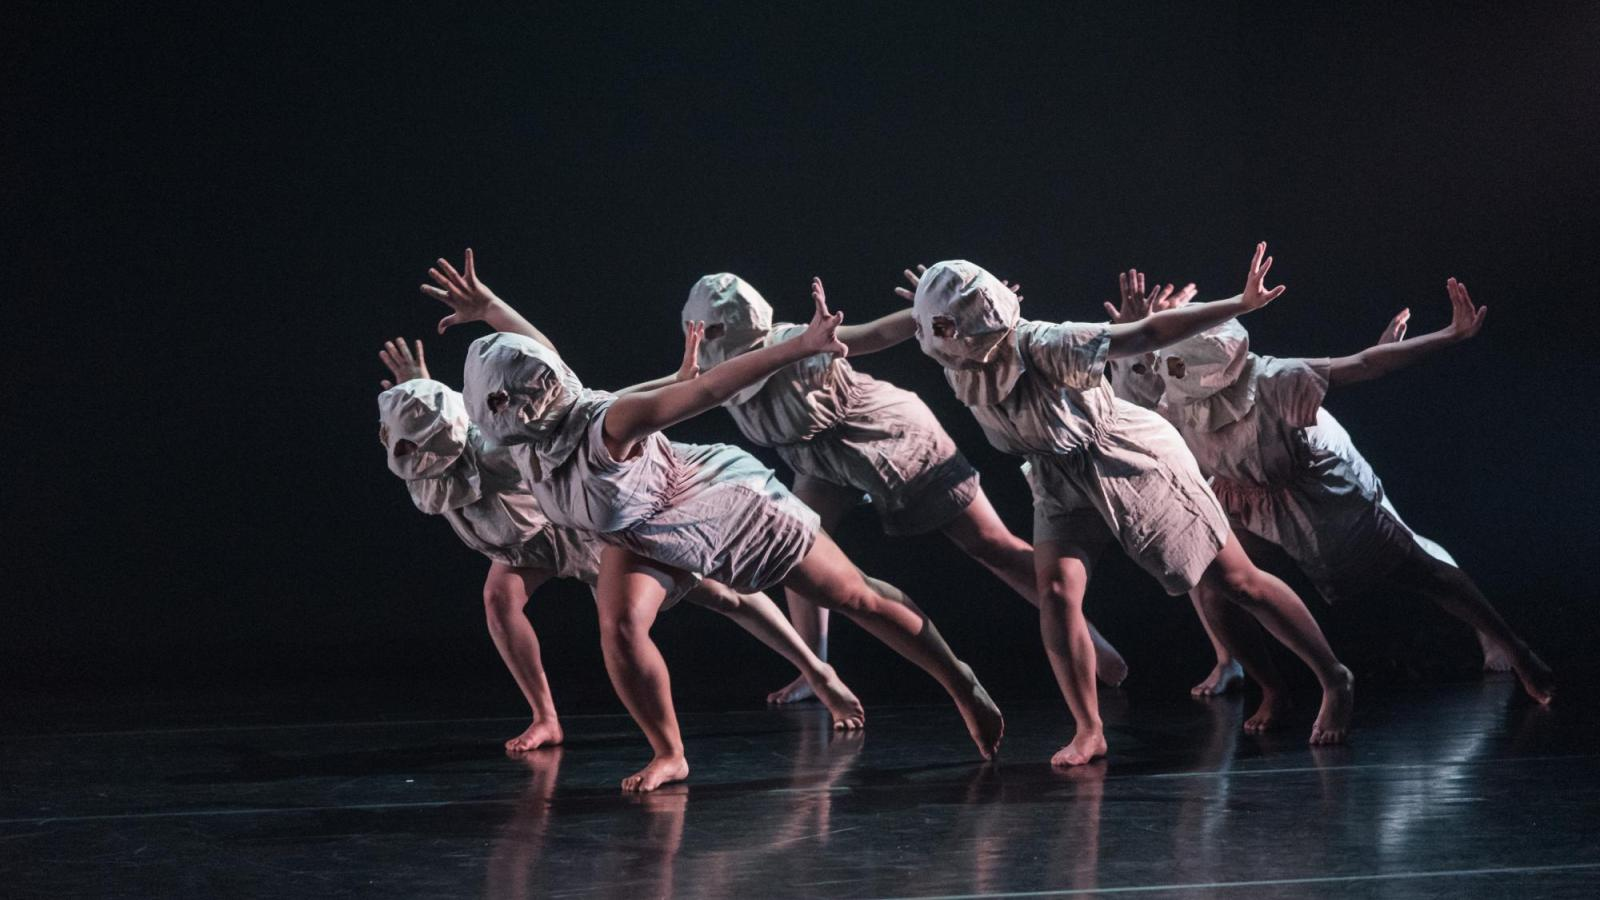 Five masked dancers move onto the stage